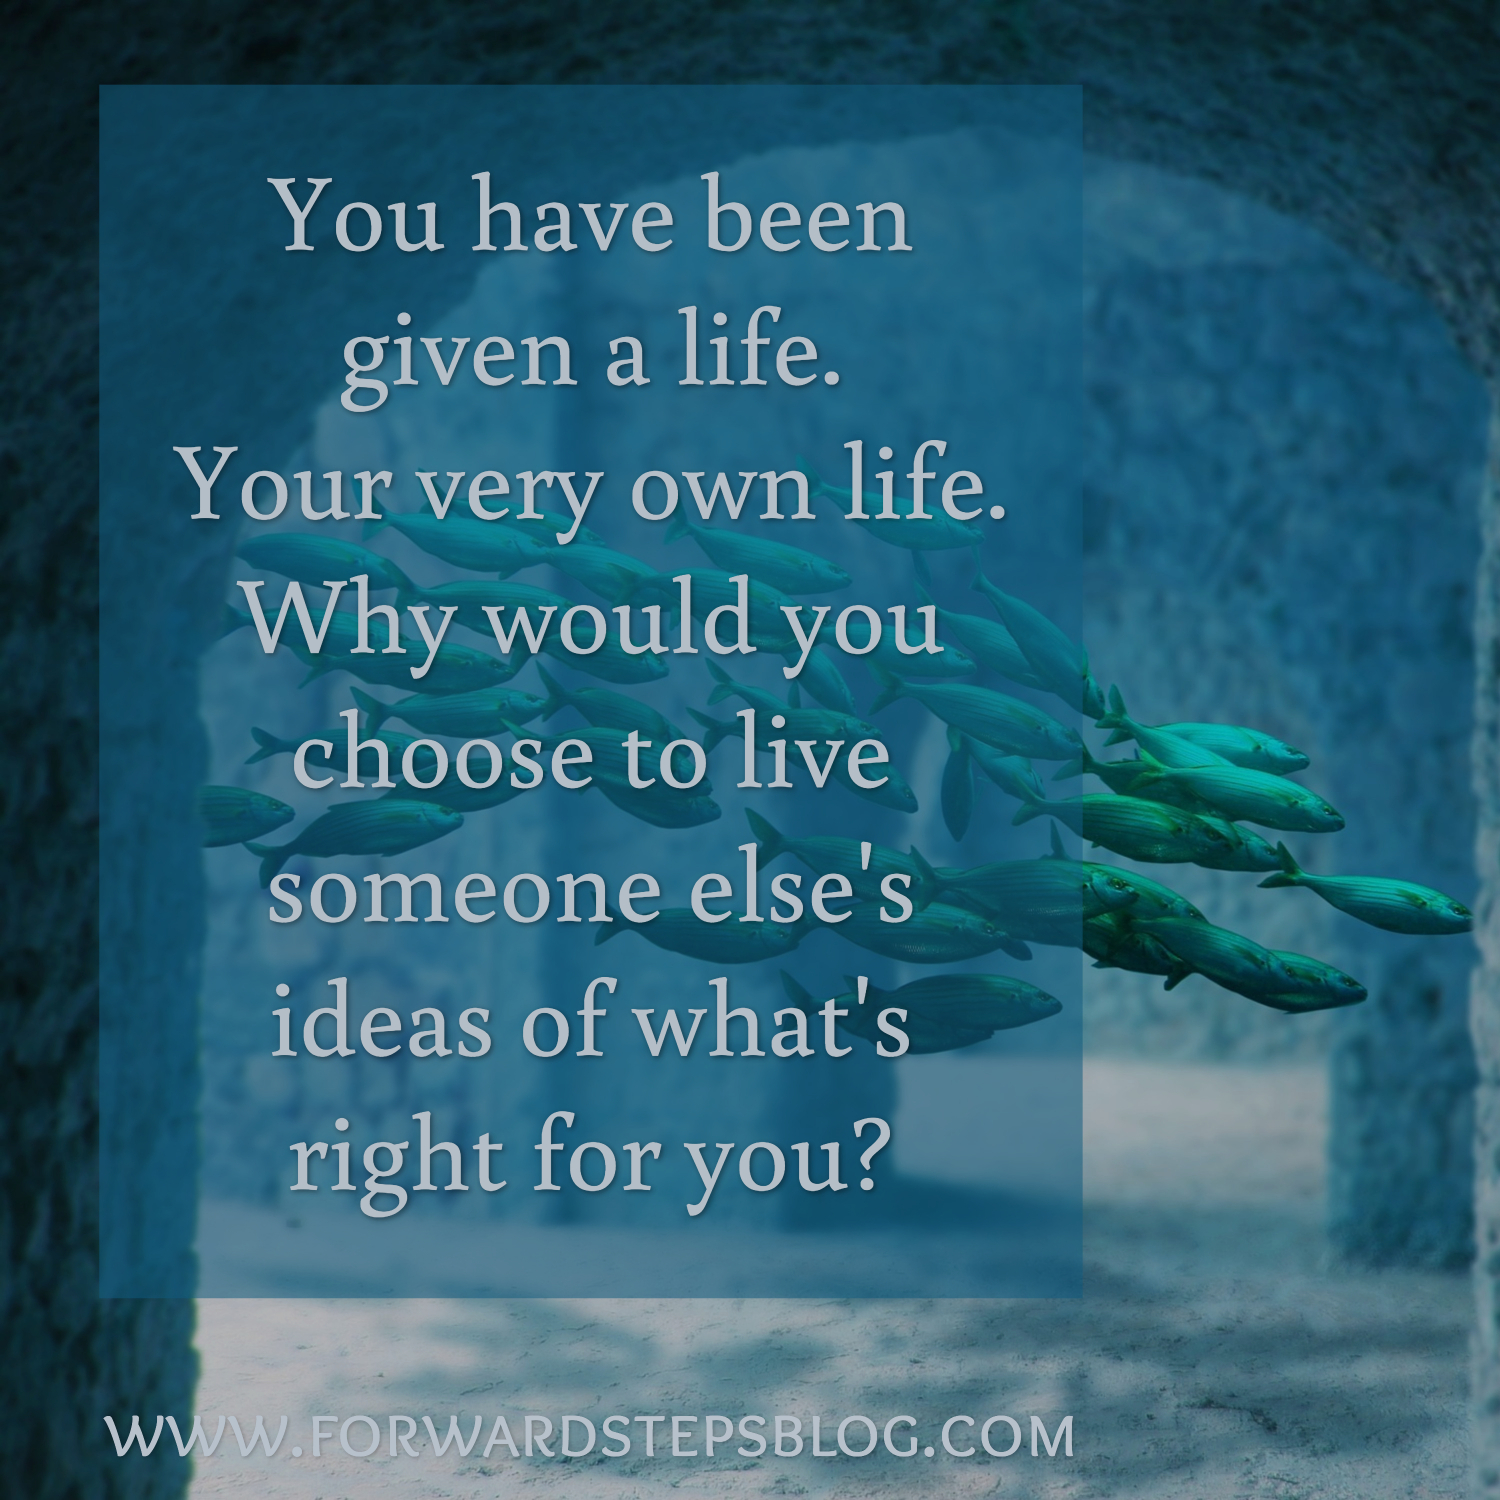 Your Very Own Life